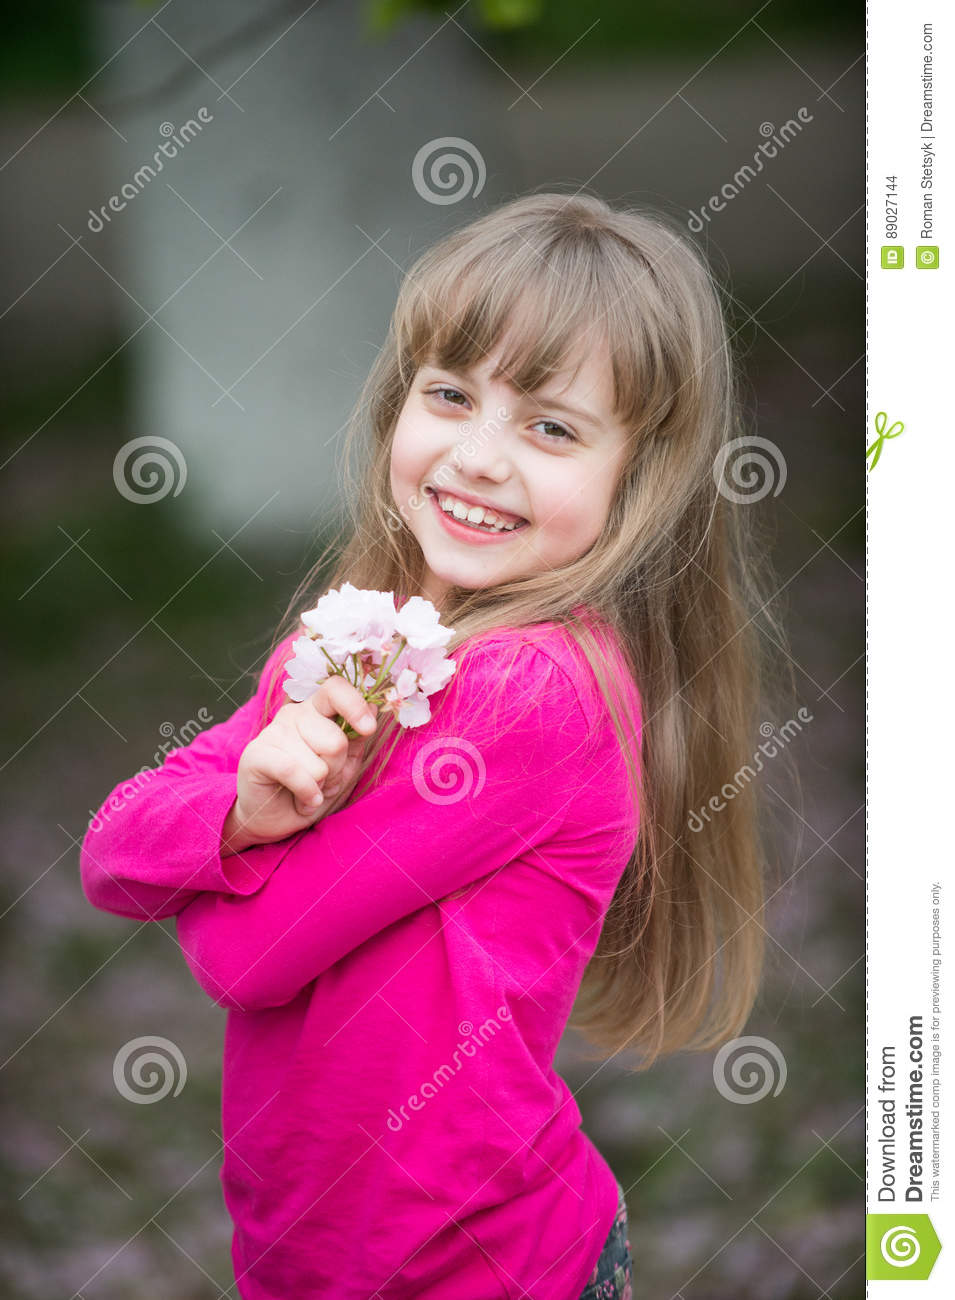 small baby girl with smiling face holding pink sakura blossom stock